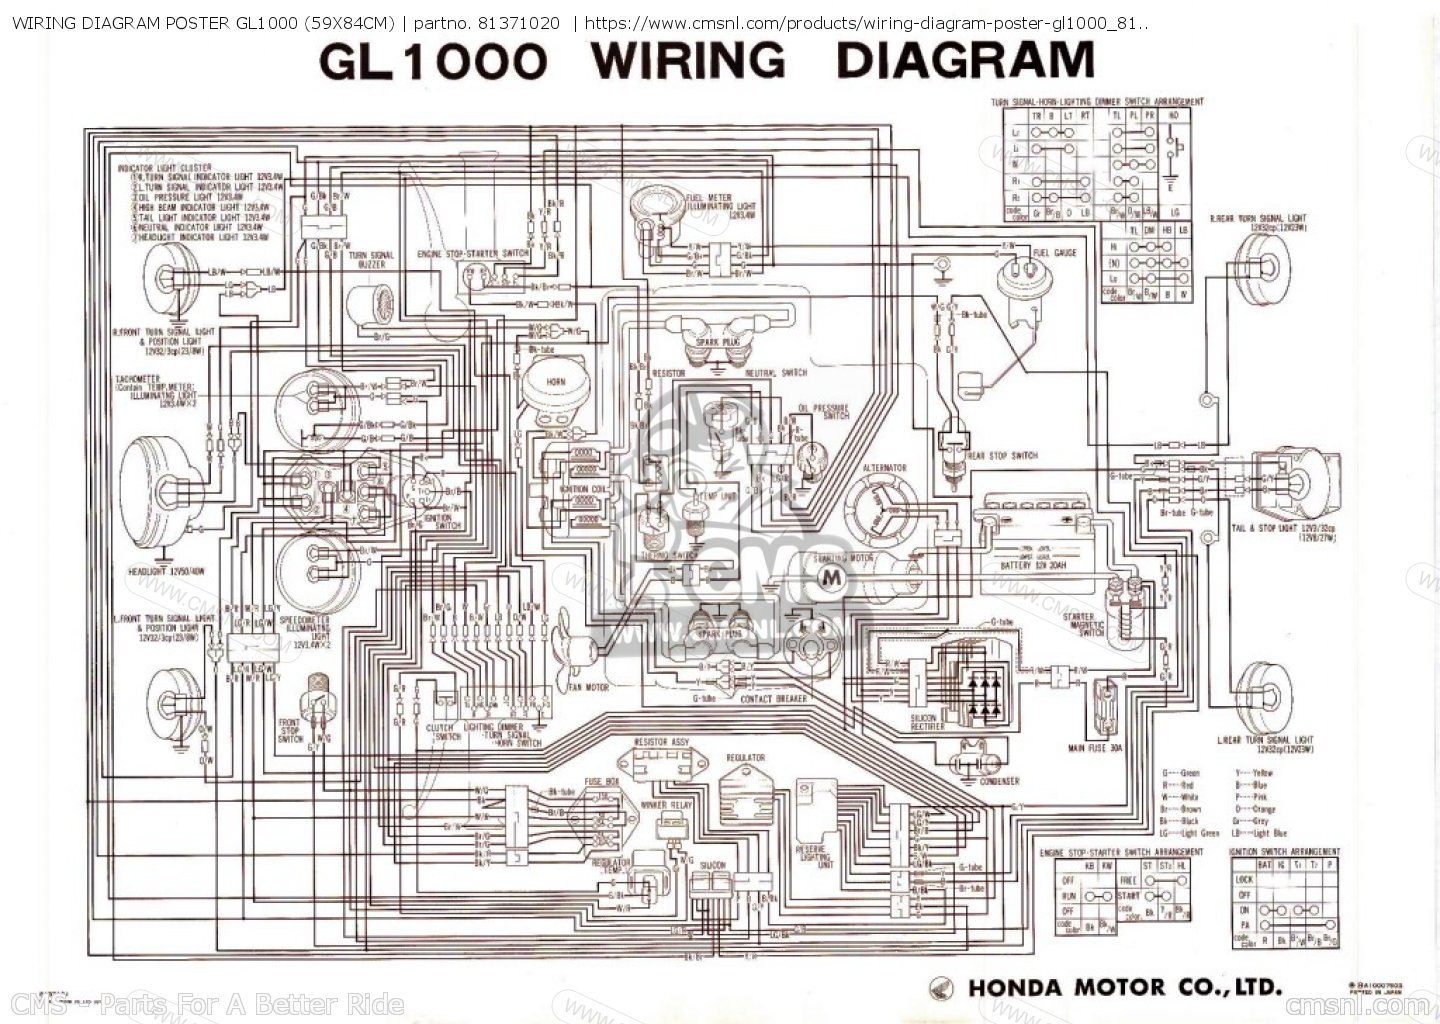 wiring diagram poster gl1000 59x84cm_big81371020 01_71ef?resize=665%2C473 g l wiring diagram the best wiring diagram 2017 Basic Electrical Wiring Diagrams at reclaimingppi.co